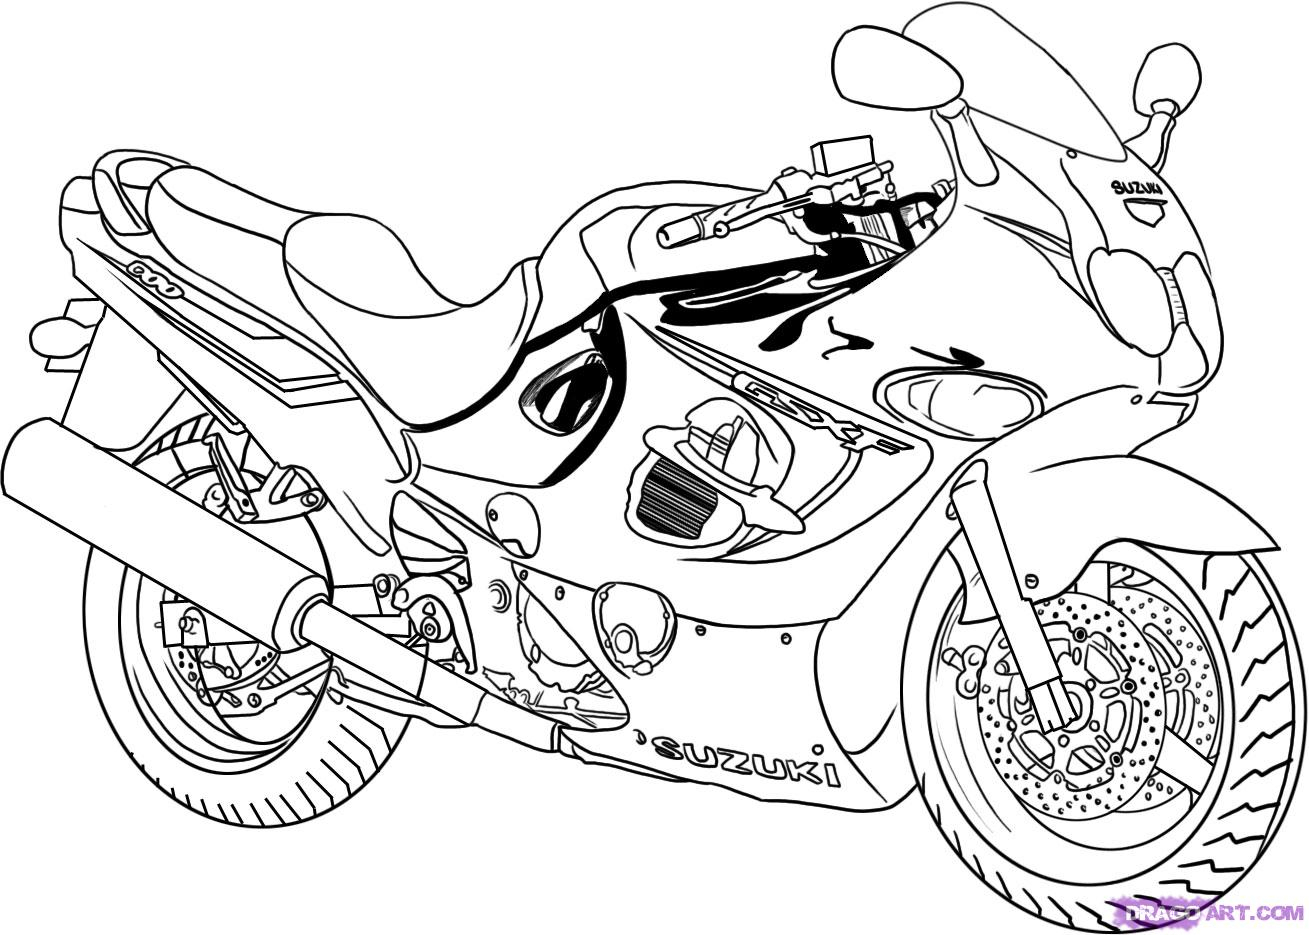 1309x935 Motorcycle Drawing Step By Step How To Draw A Dirt Bike, Step By